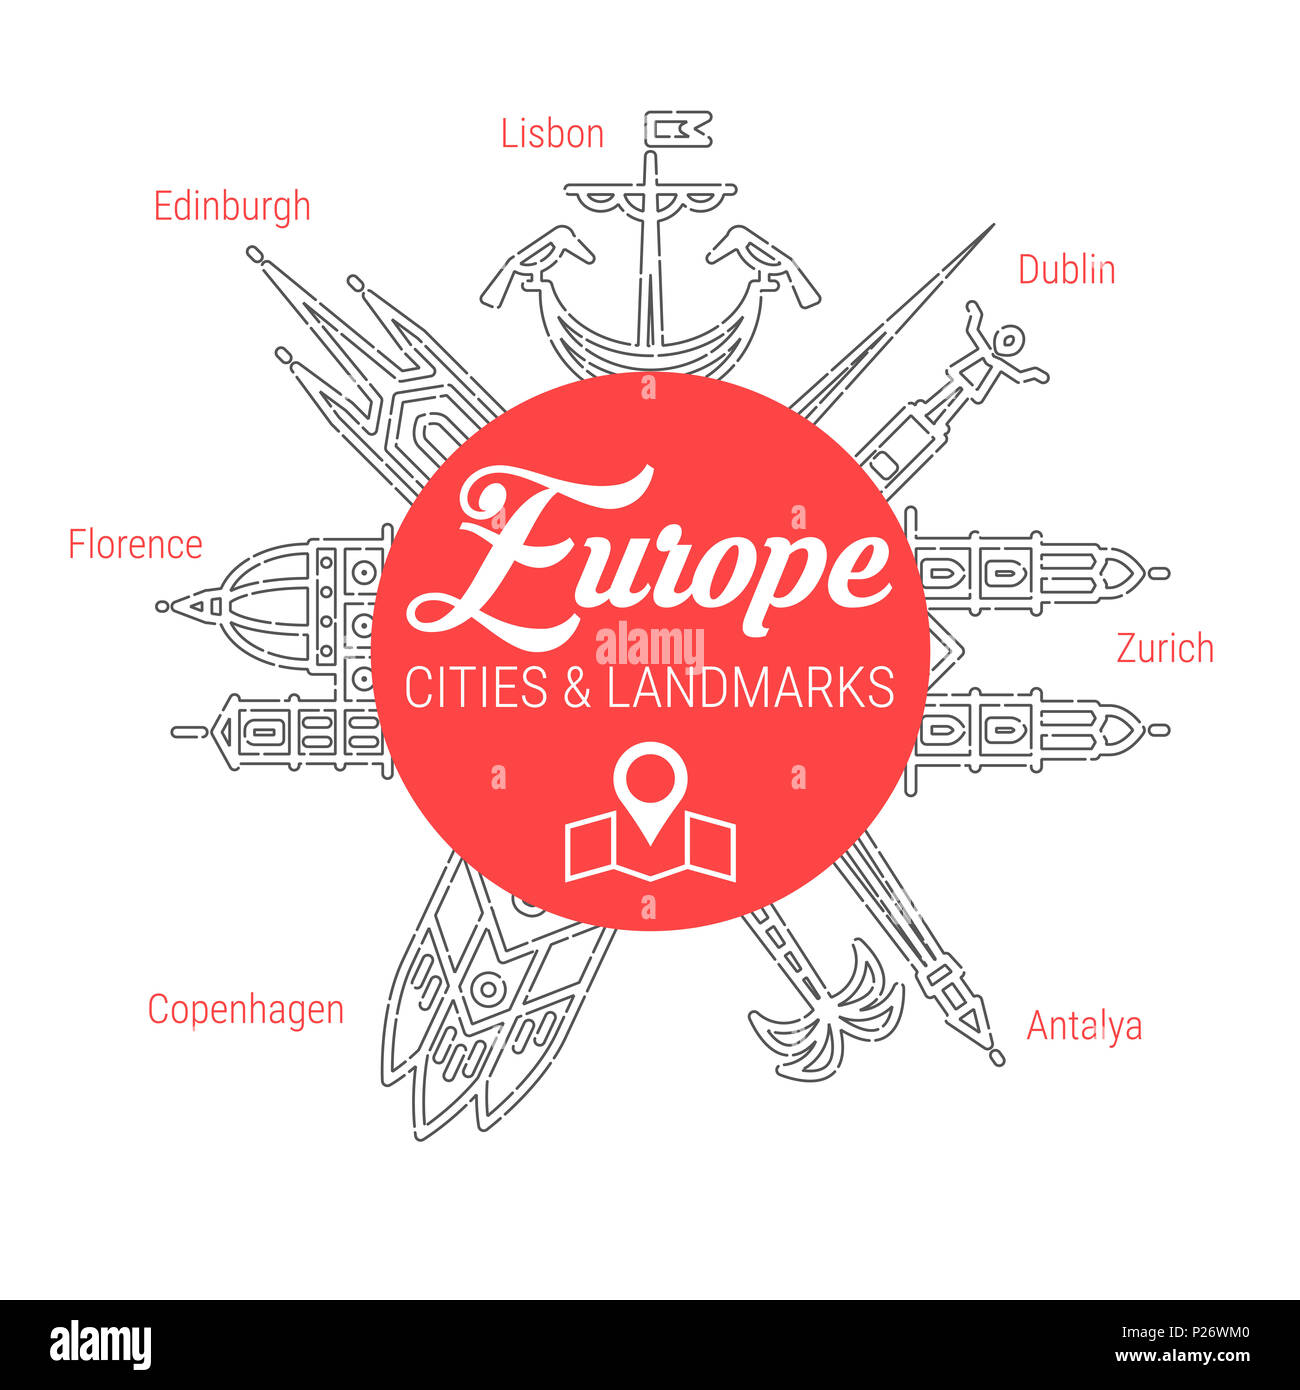 Famous European Cities - Landmarks - Places of Interest - Attractions - Sights - Lions. Line Icon Set. Travel and Tourism Background. - Stock Image